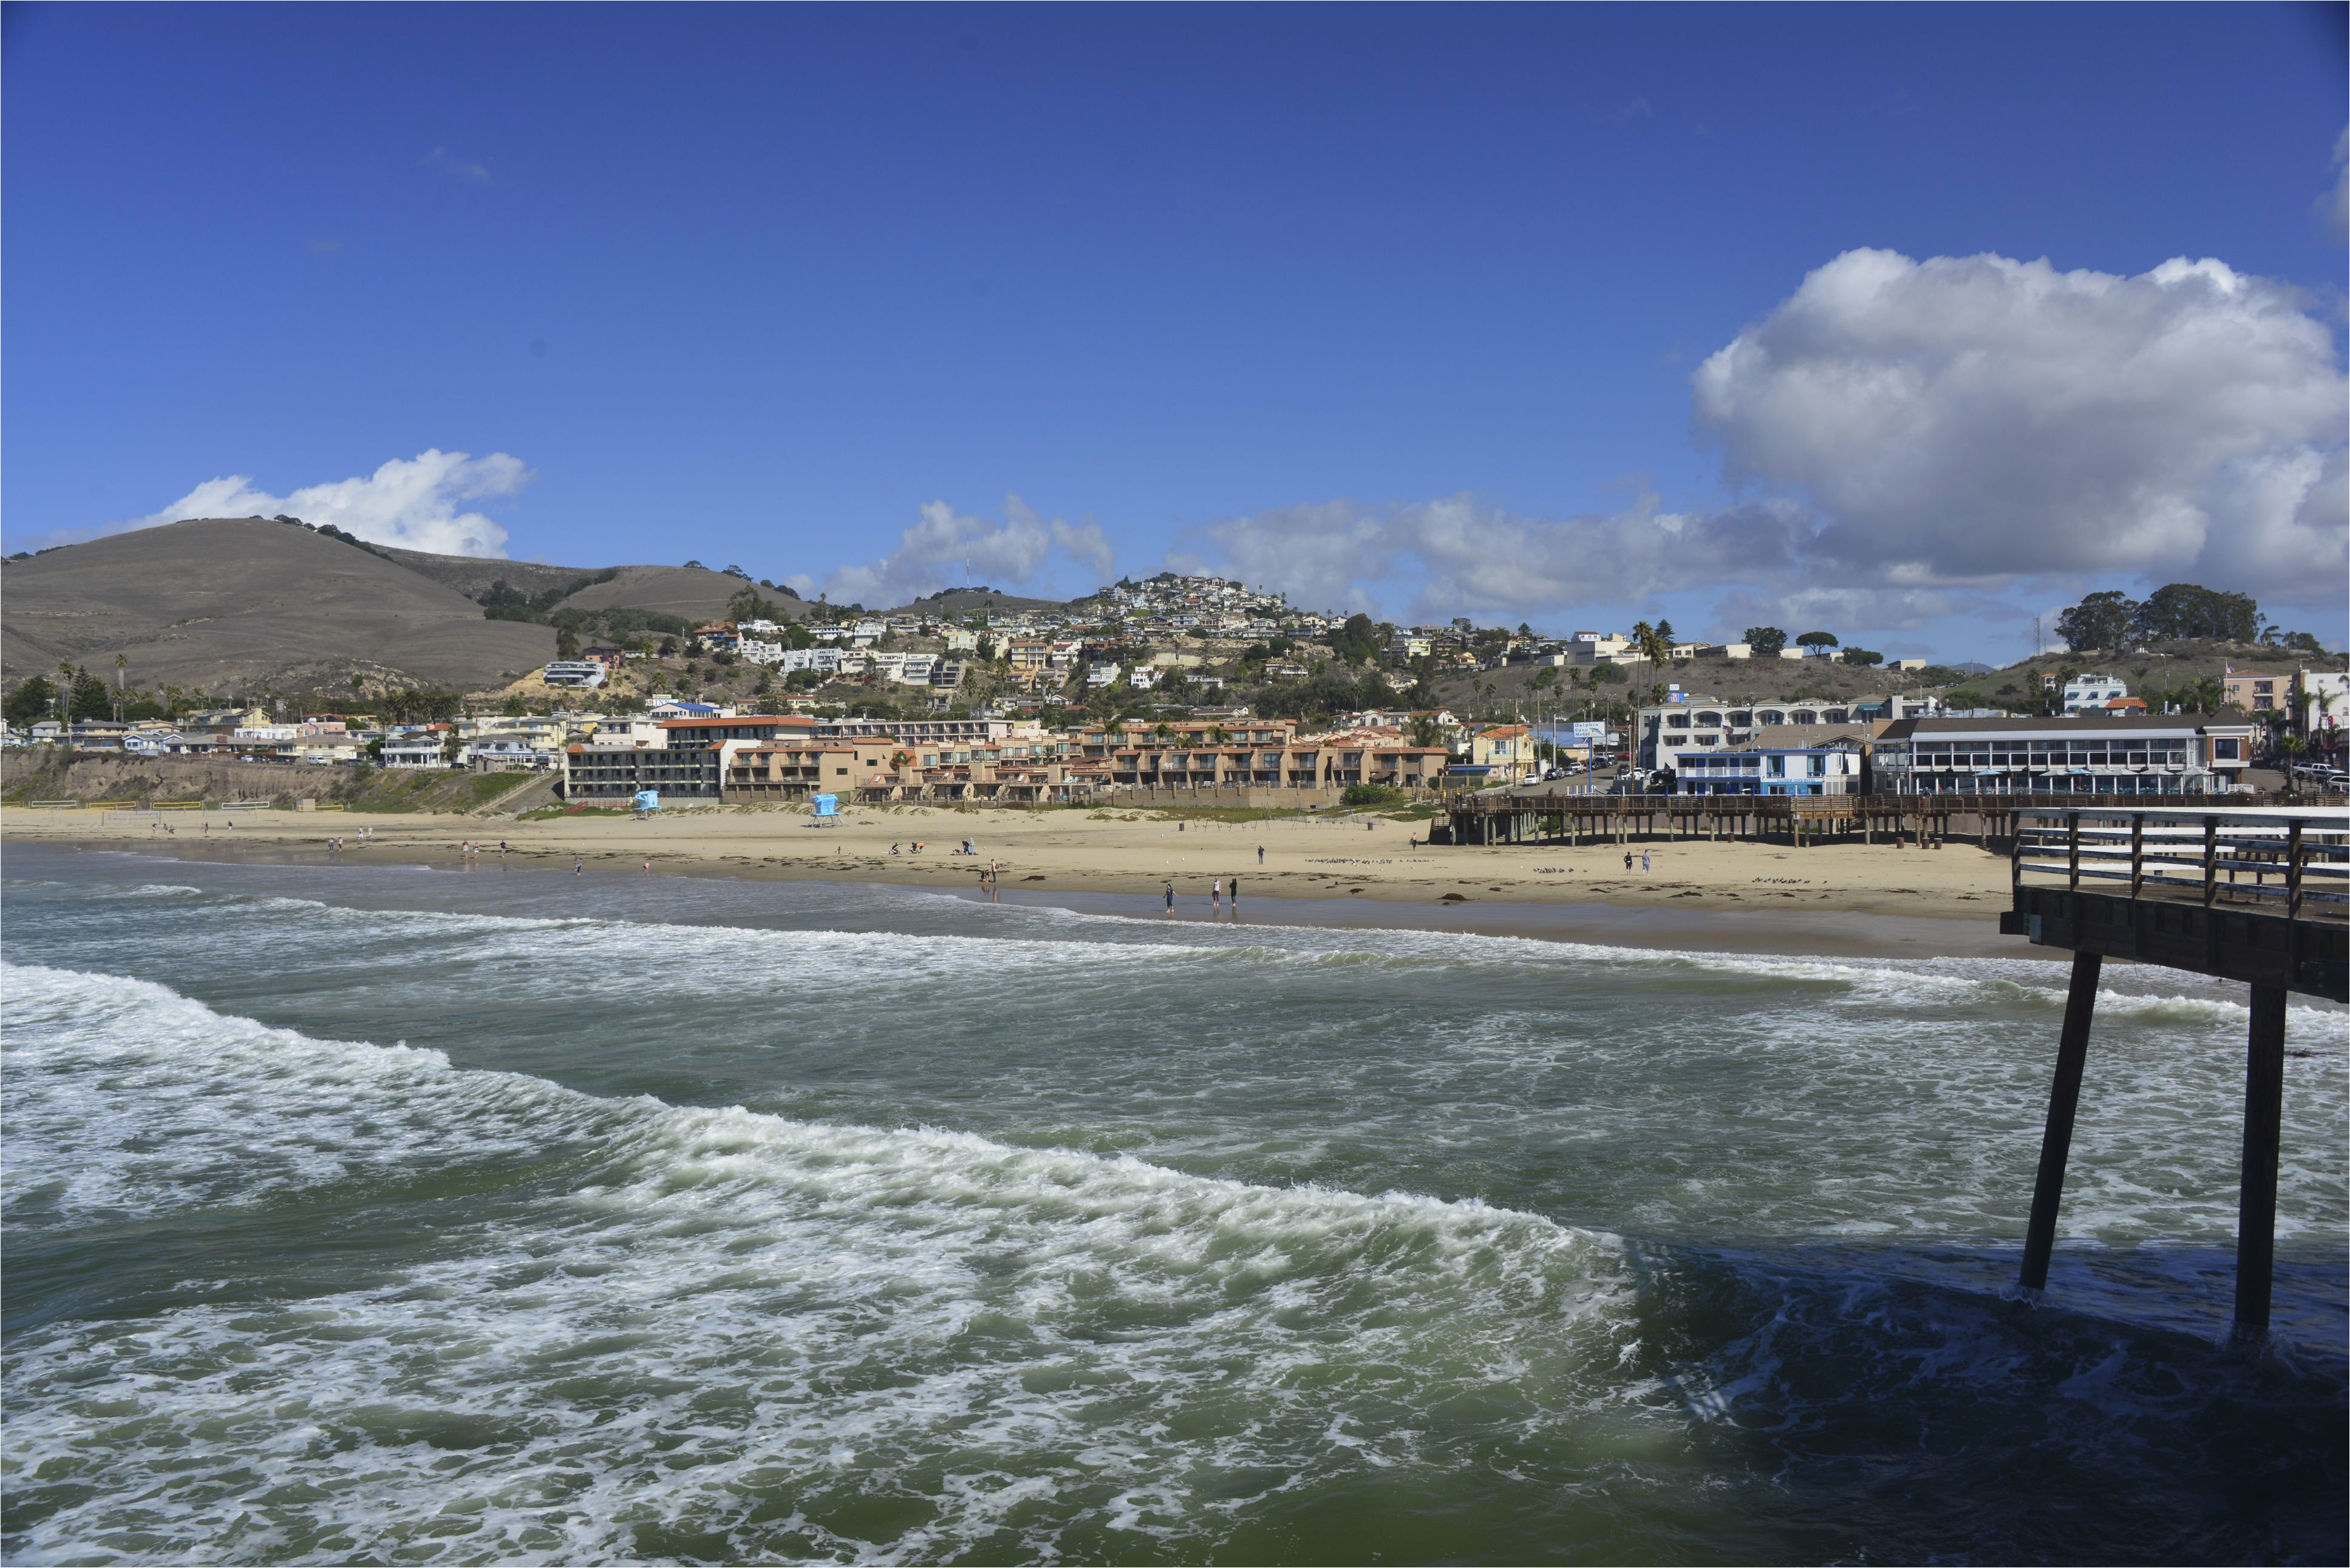 pismo beach california vacation planning guide